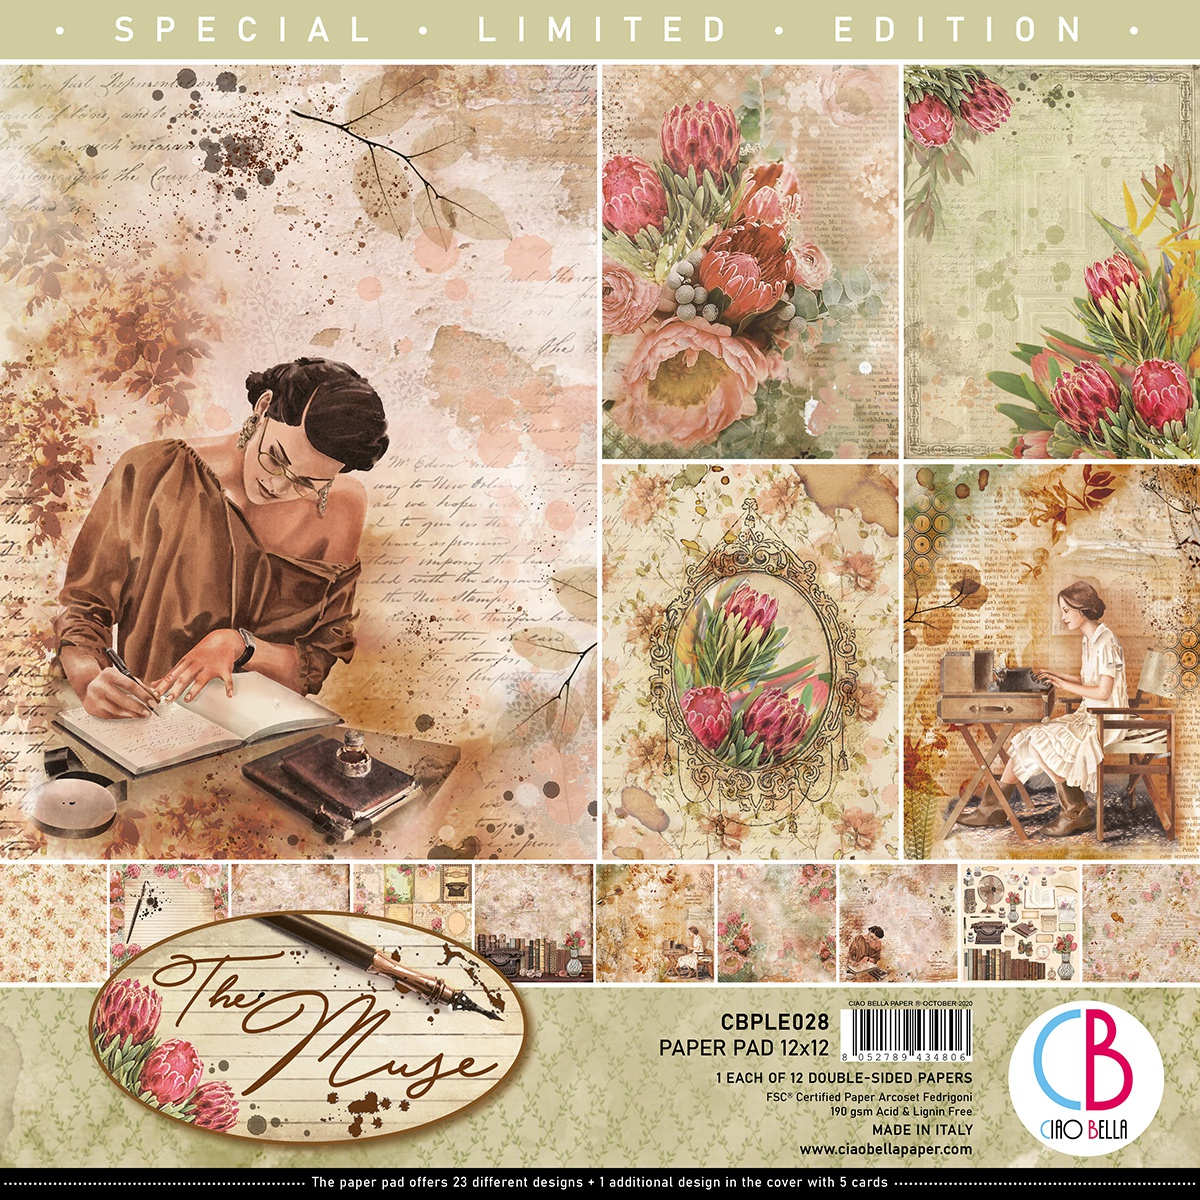 Ciao Bella Double-Sided Paper Pack - The Muse, 12x12